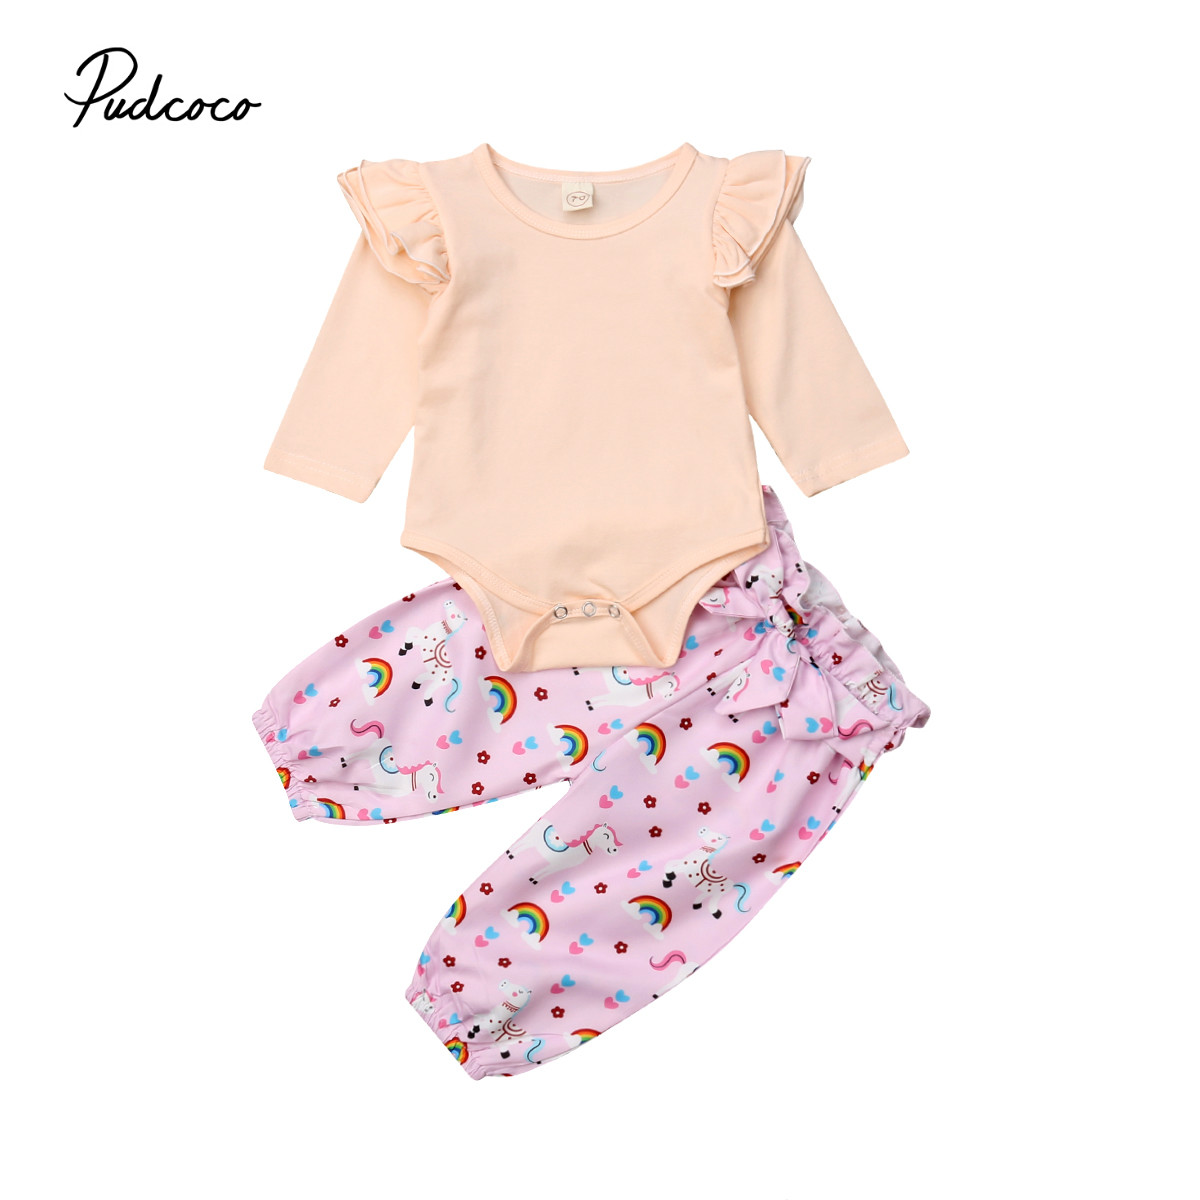 Cute Soft Cotton Baby Girl Clothing Set Romper Tops -7455